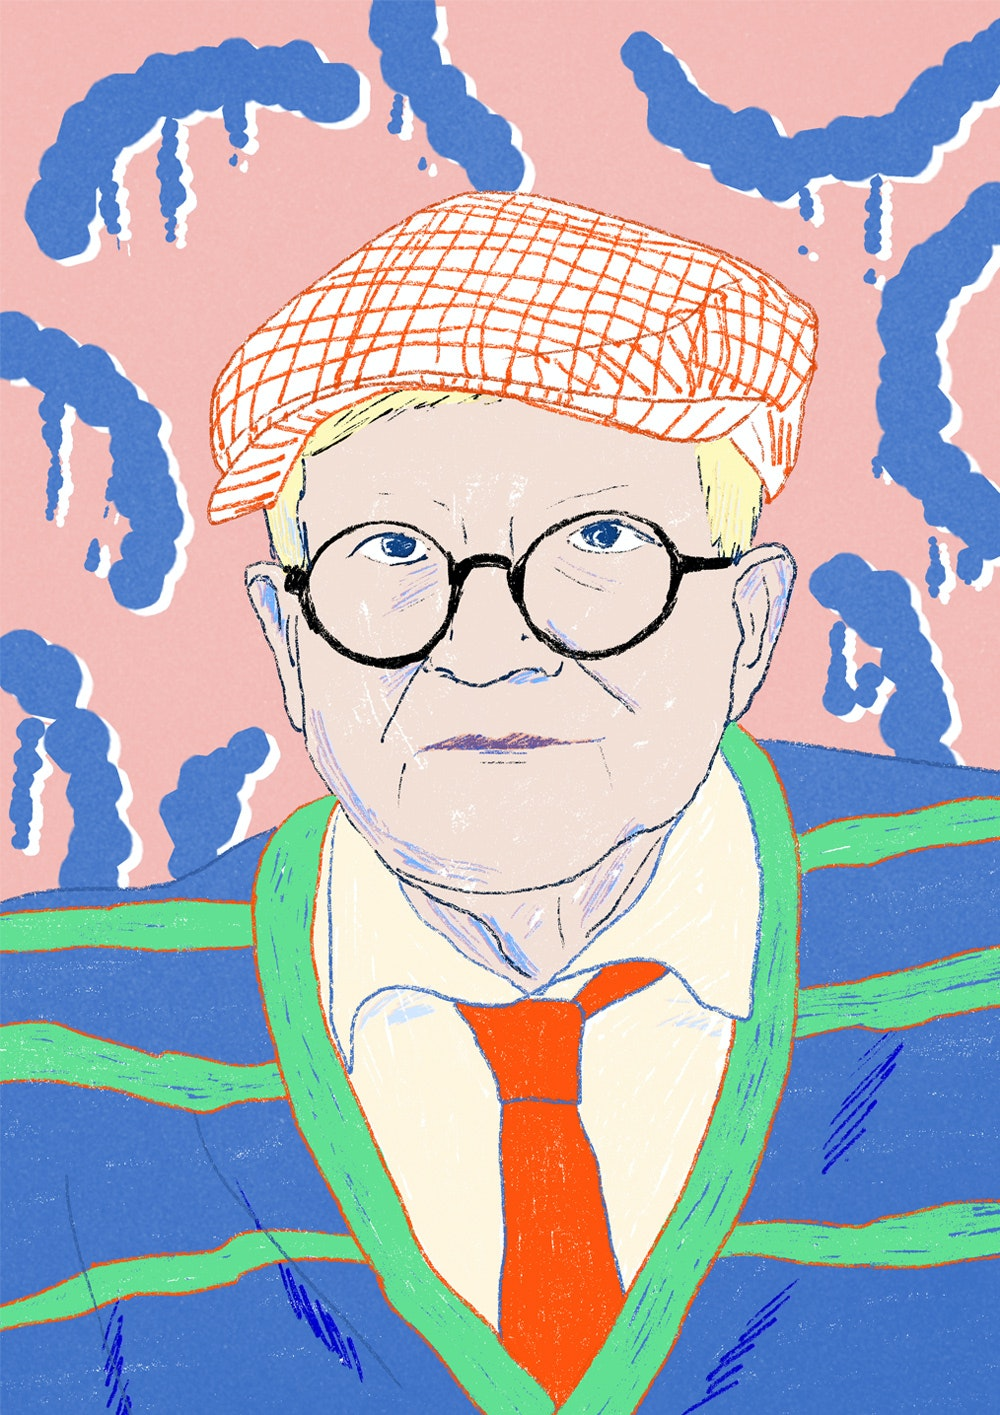 Milica Golubovic - Milica_Golubovic_David_Hockney